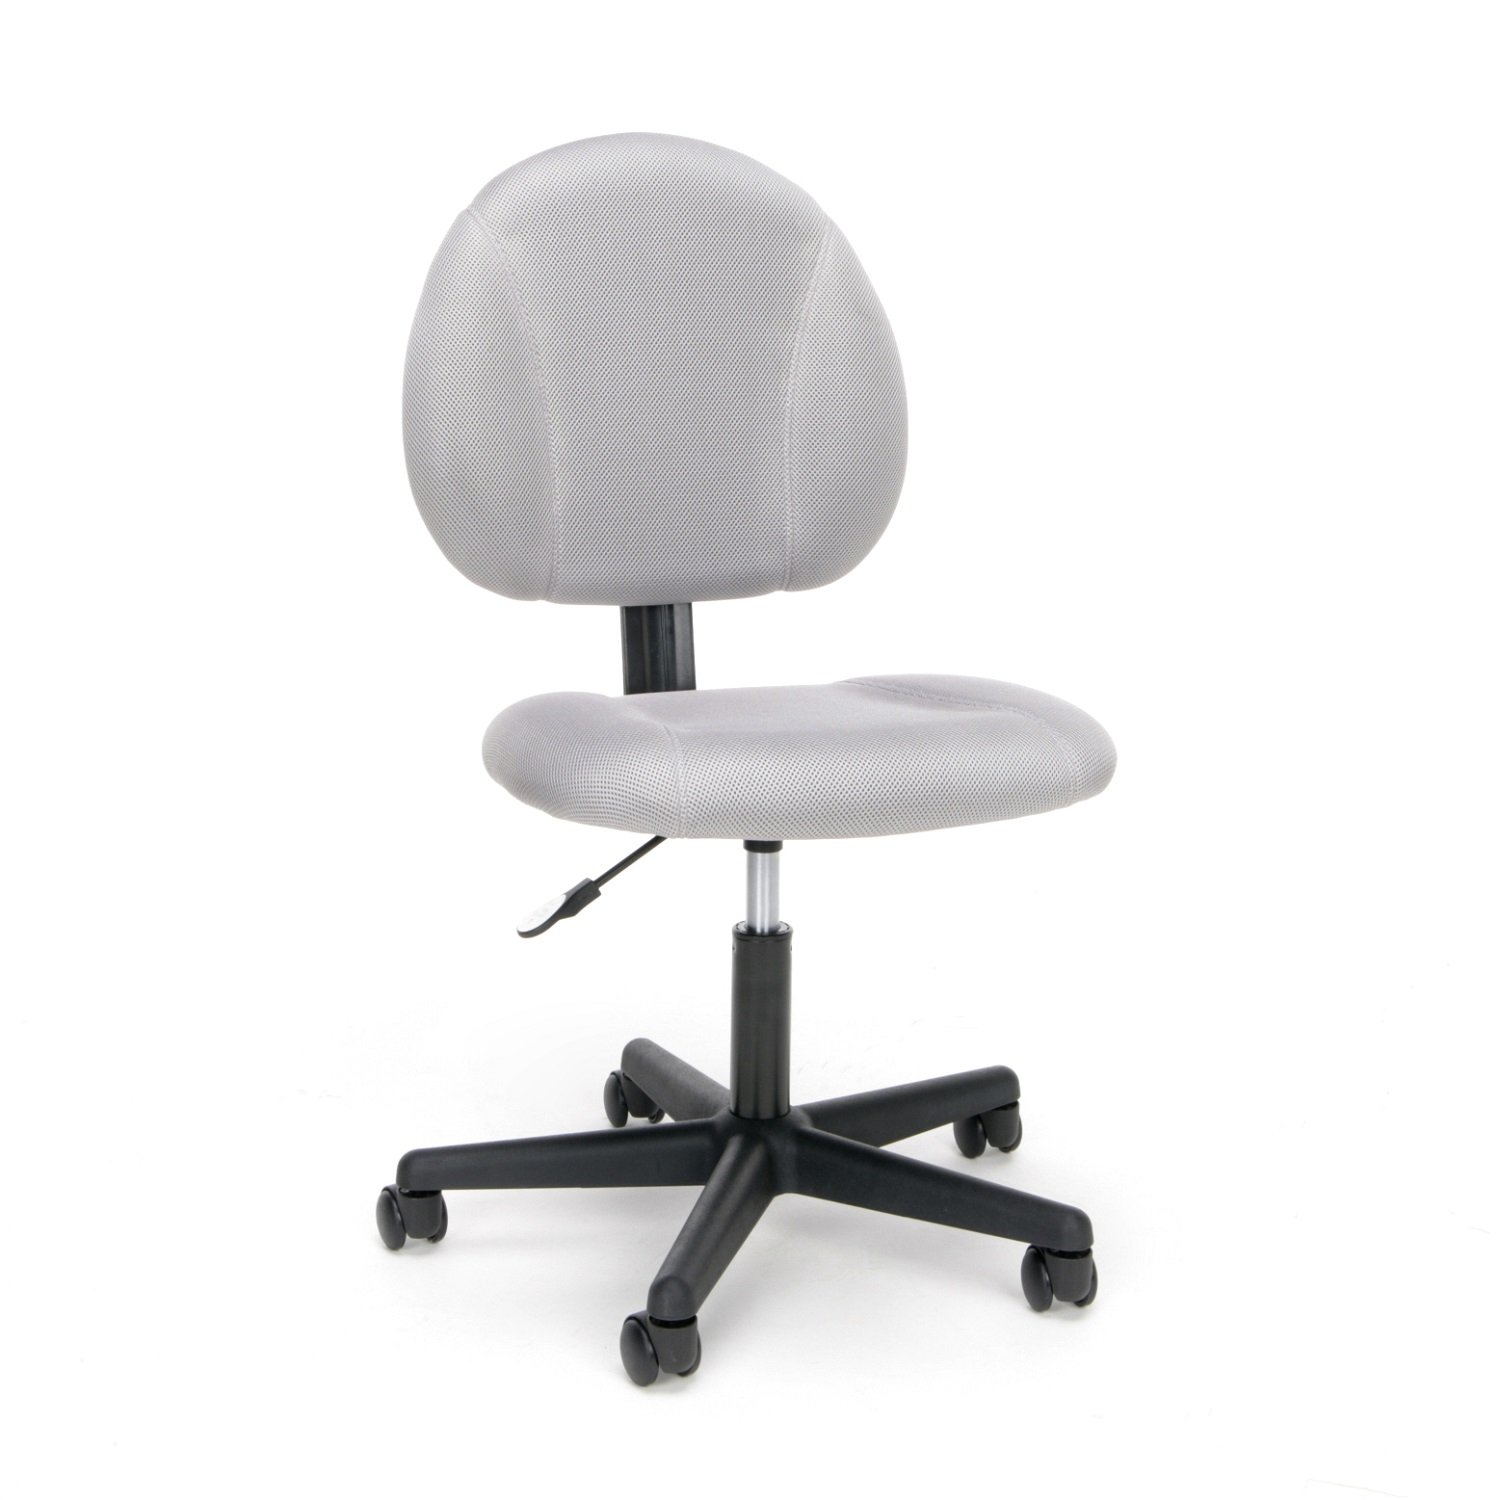 Essentials ESS-3060 Swivel Upholstered Armless Task Chair - Ergonomic Computer/Office Chair, Gray